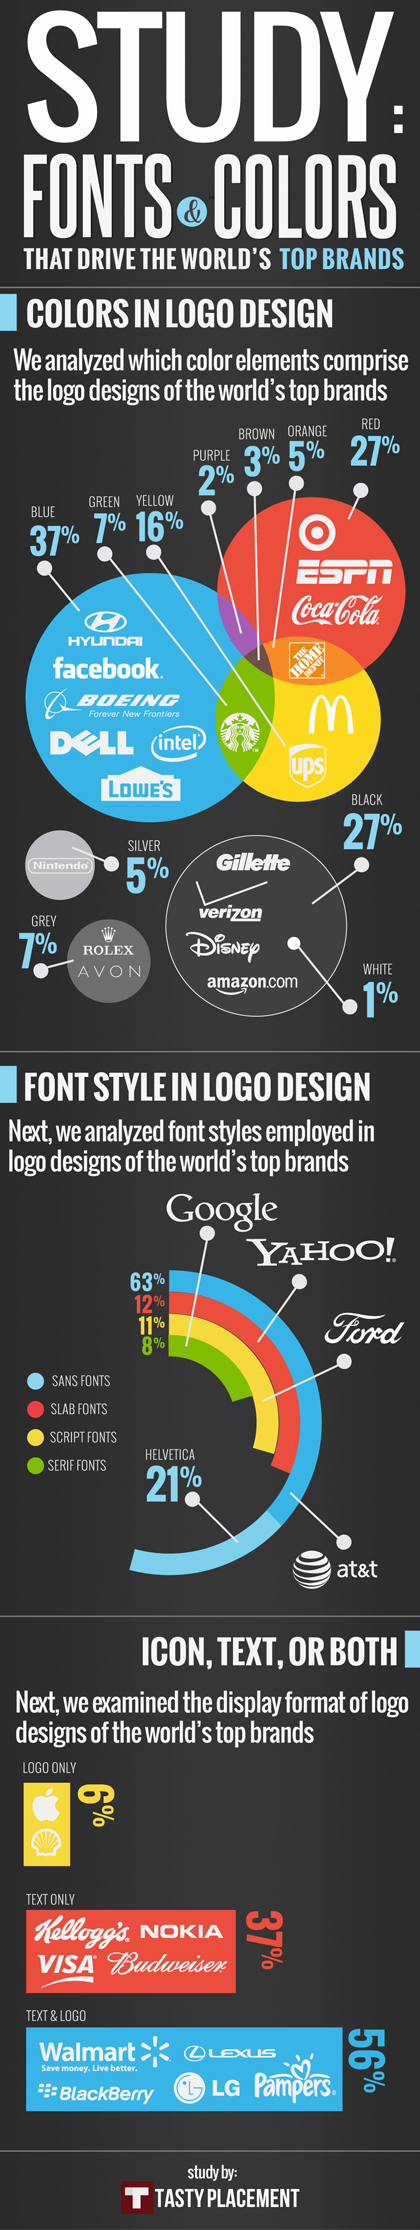 Infographic: Fonts & Colors That Drive the World's Top Brands | Corporate Identity | Scoop.it